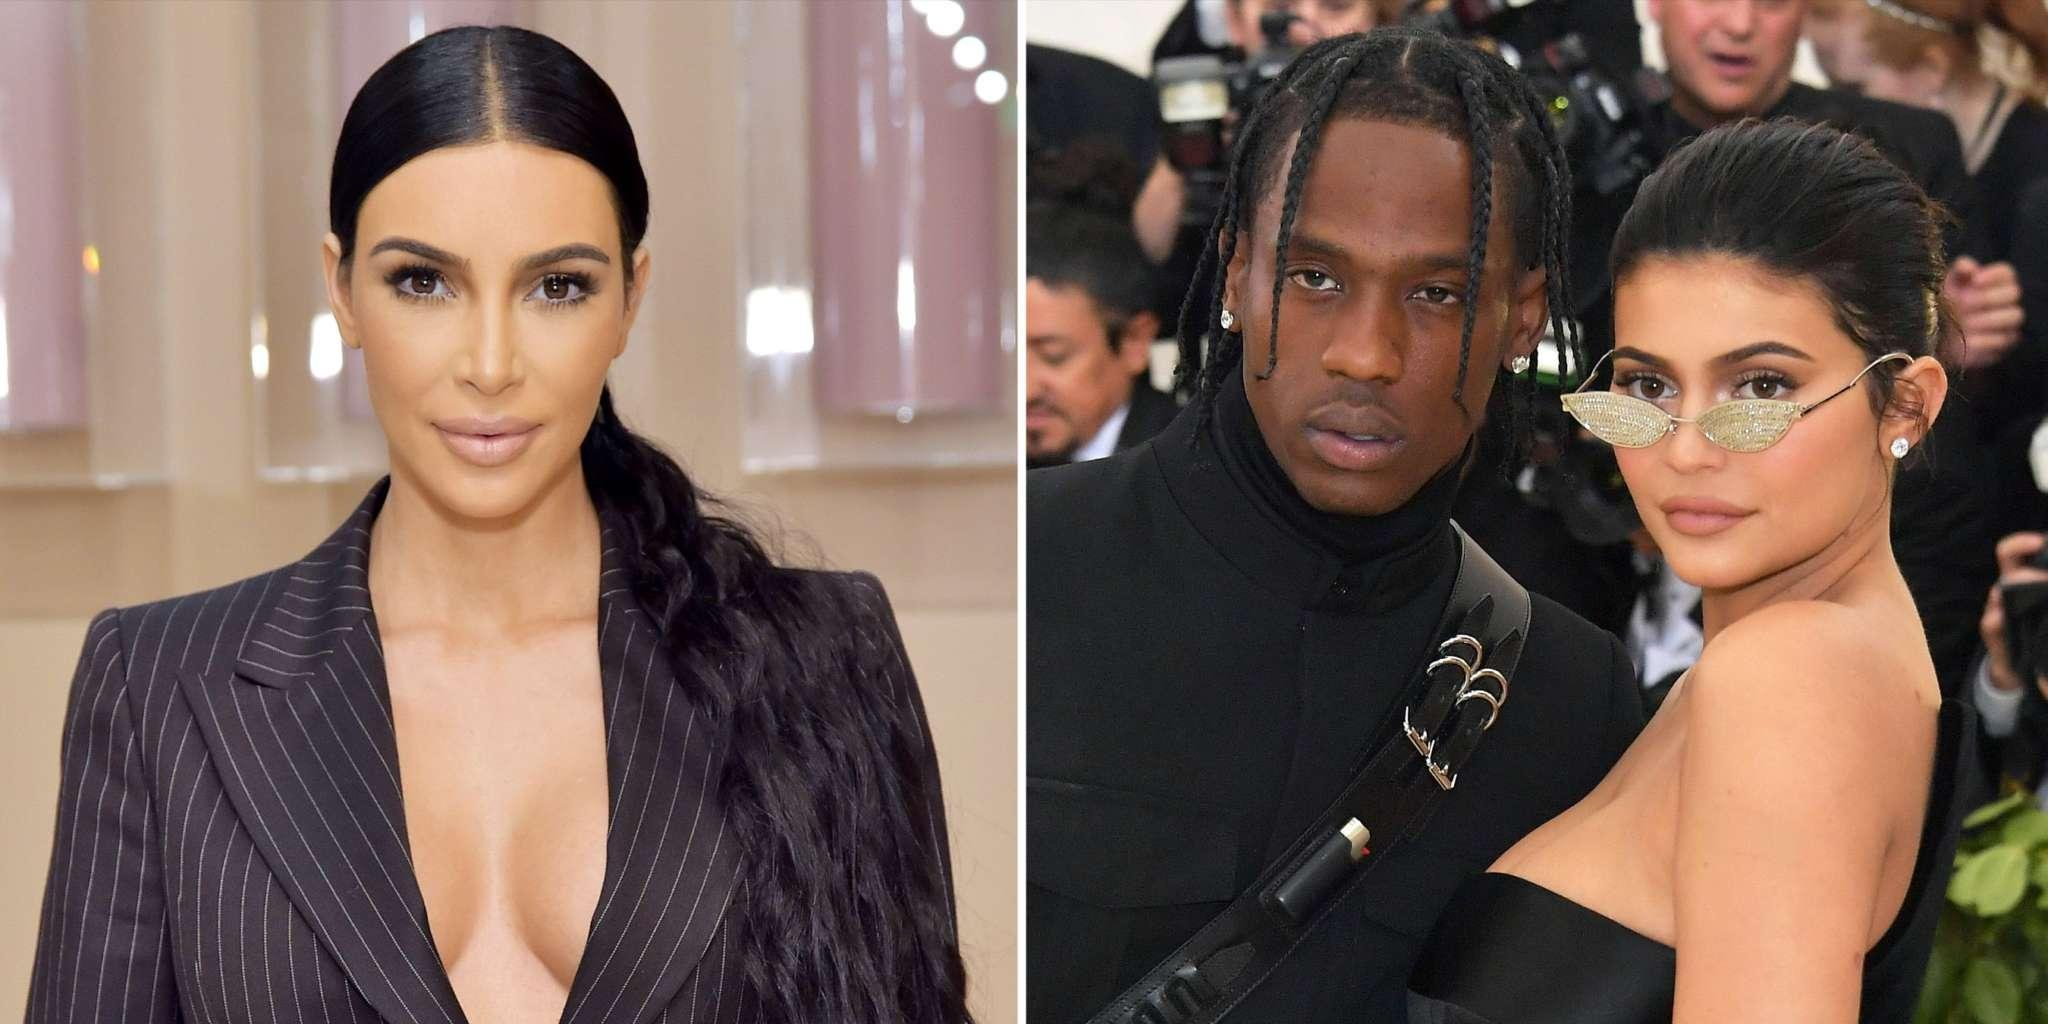 KUWK: Kim Kardashian Updates Fans On Kylie Jenner And Travis Scott's Relationship - Are They Back Together?